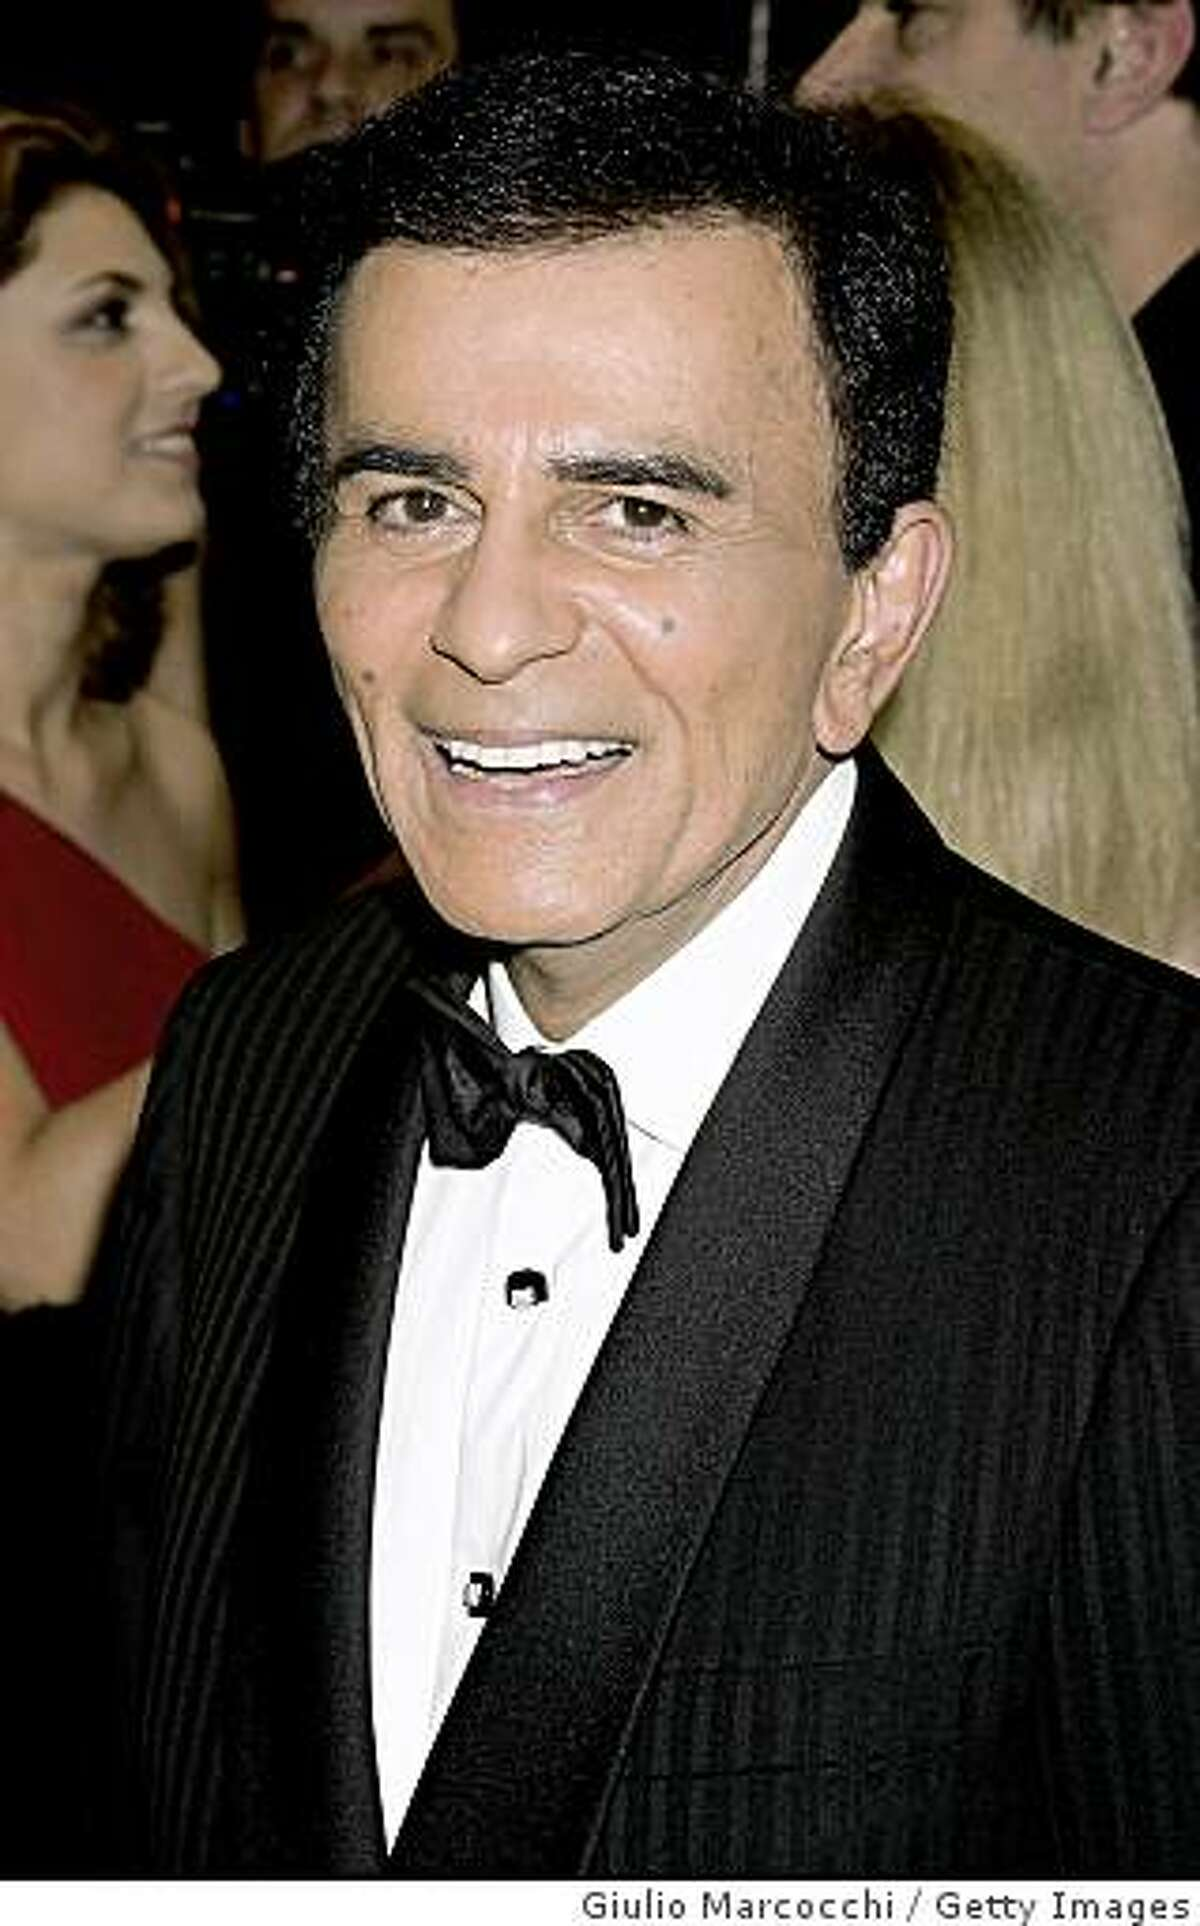 BEVERLY HILLS, CA - FEBRUARY 29: Casey Kasem arrives at the 13th Annual Night of 100 Stars Oscar Viewing Black Tie Gala, February 29, 2004 at the Beverly Hills Hotel in Beverly Hills, California. (Photo by Giulio Marcocchi/Getty Images)